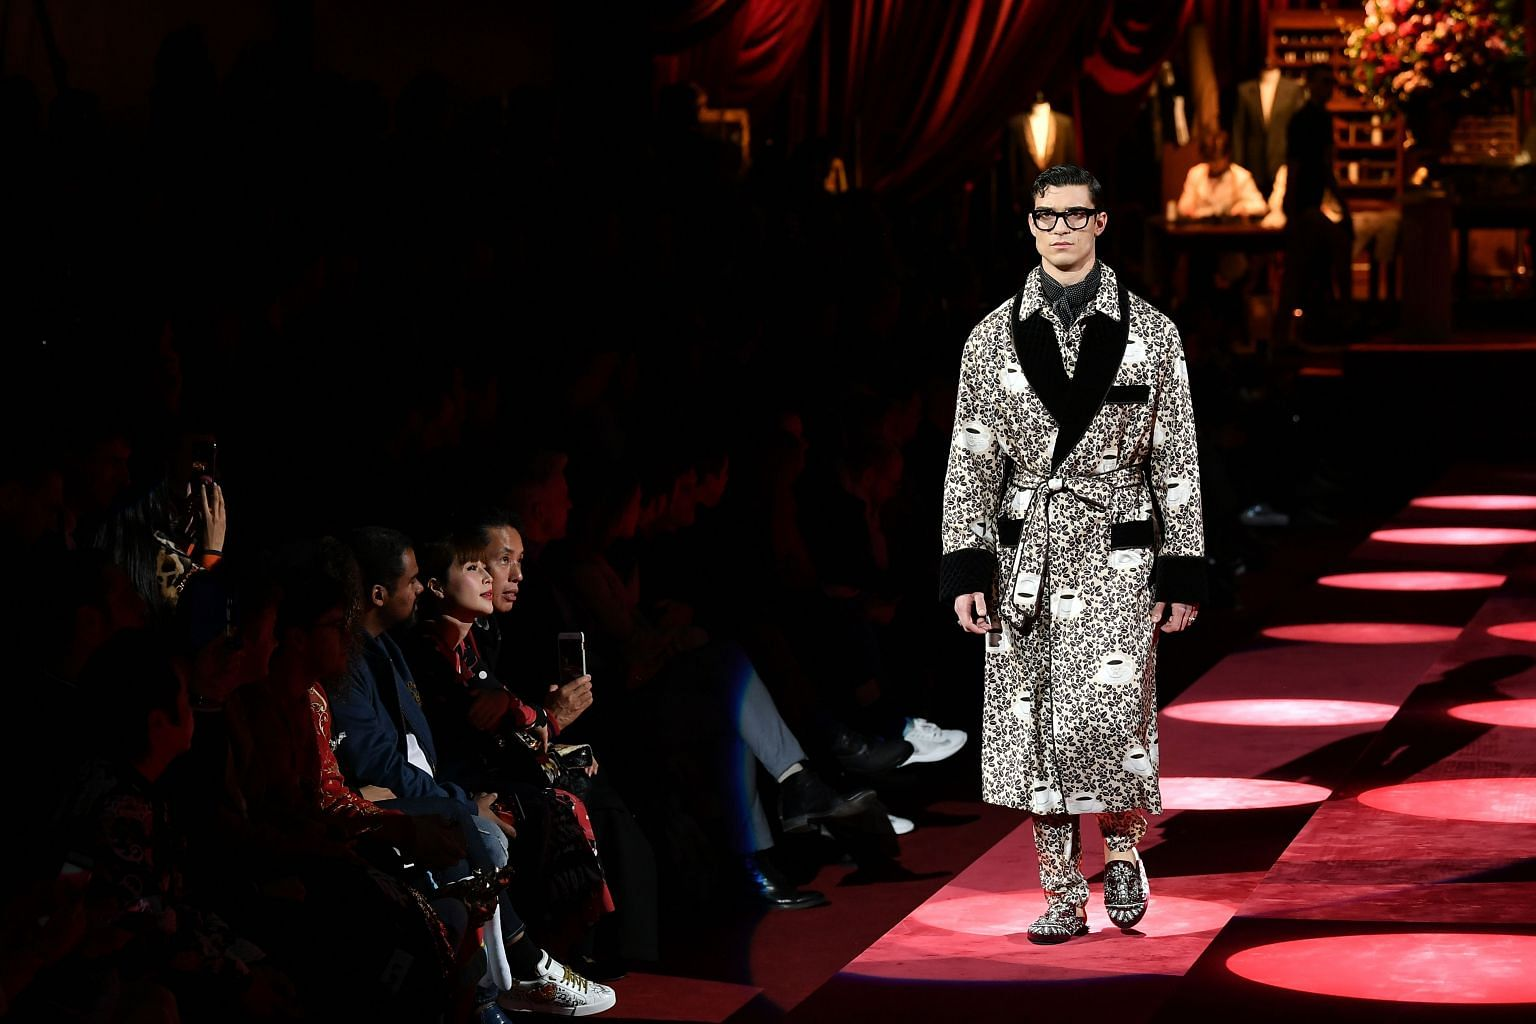 e8b1f8dfacb9 D&G unveil Italian oomph at Milan Fashion Week after China fiasco, Fashion  News & Top Stories - The Straits Times